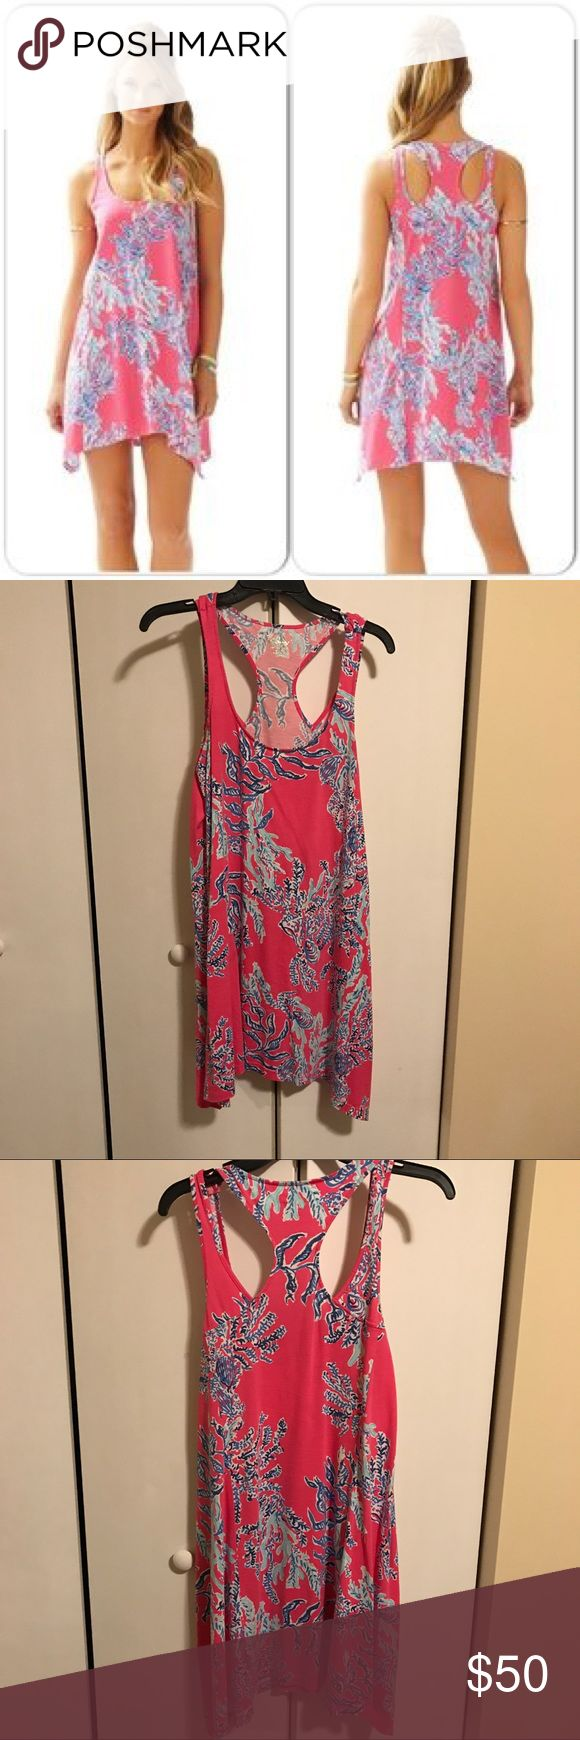 Lilly Pulitzer Monterey dress Lilly Pulitzer Monterey dress in size Small. Cotton swing dress. In excellent condition! Only worn a few times. Lilly Pulitzer Dresses